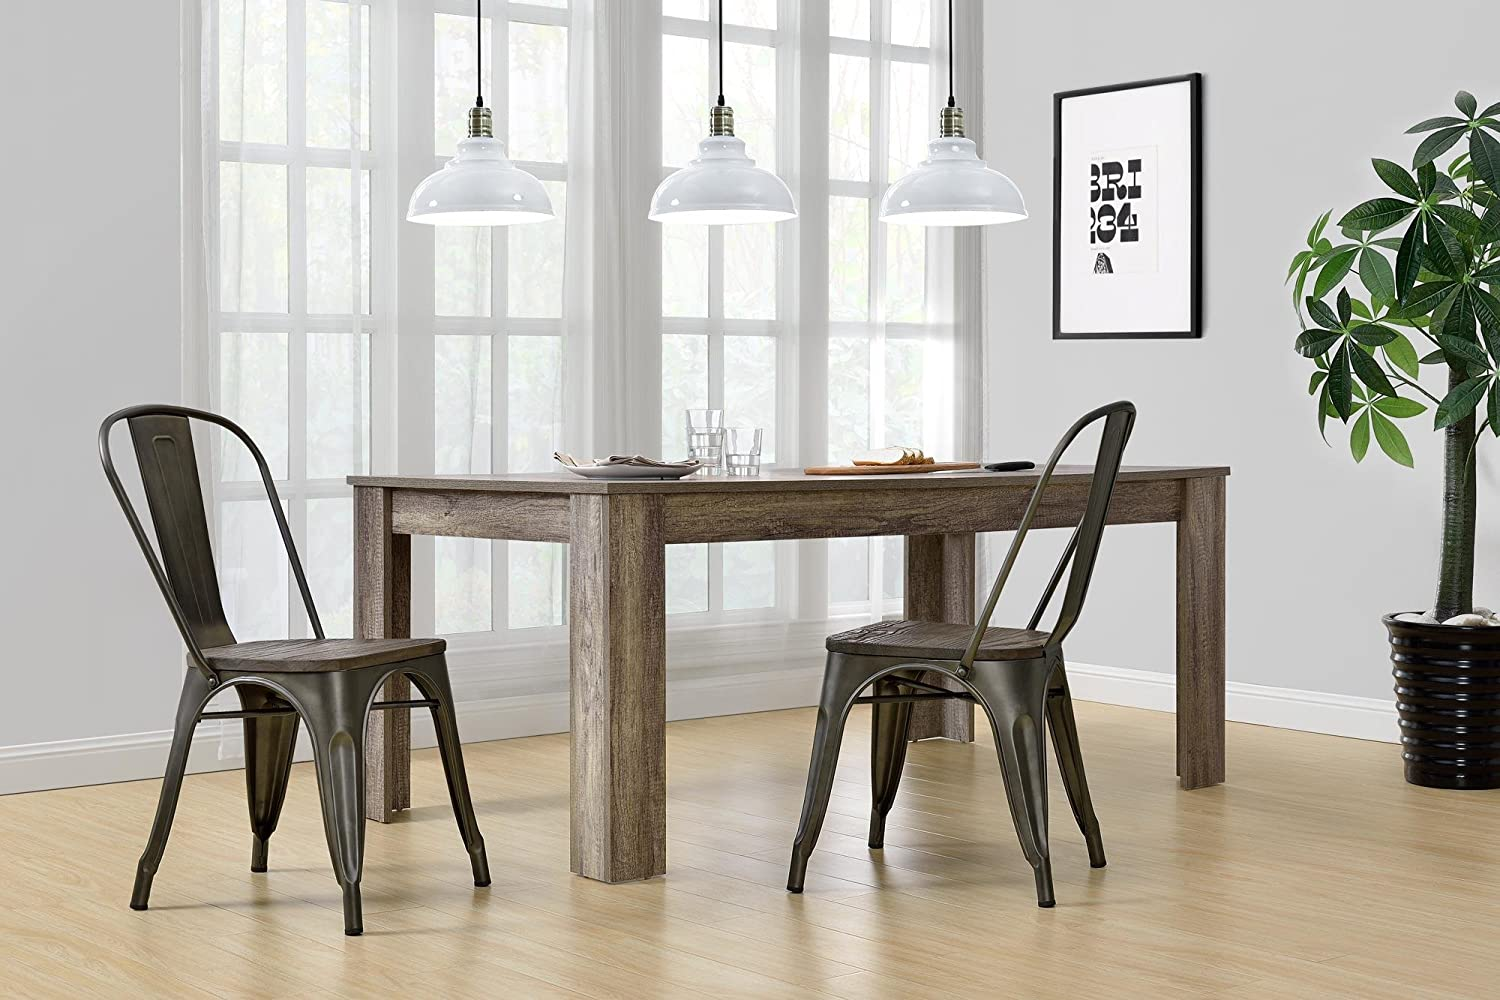 Gentil Amazon.com: DHP Fusion Metal Dining Chair With Wood Seat, Set Of Two,  Antique Copper: Kitchen U0026 Dining